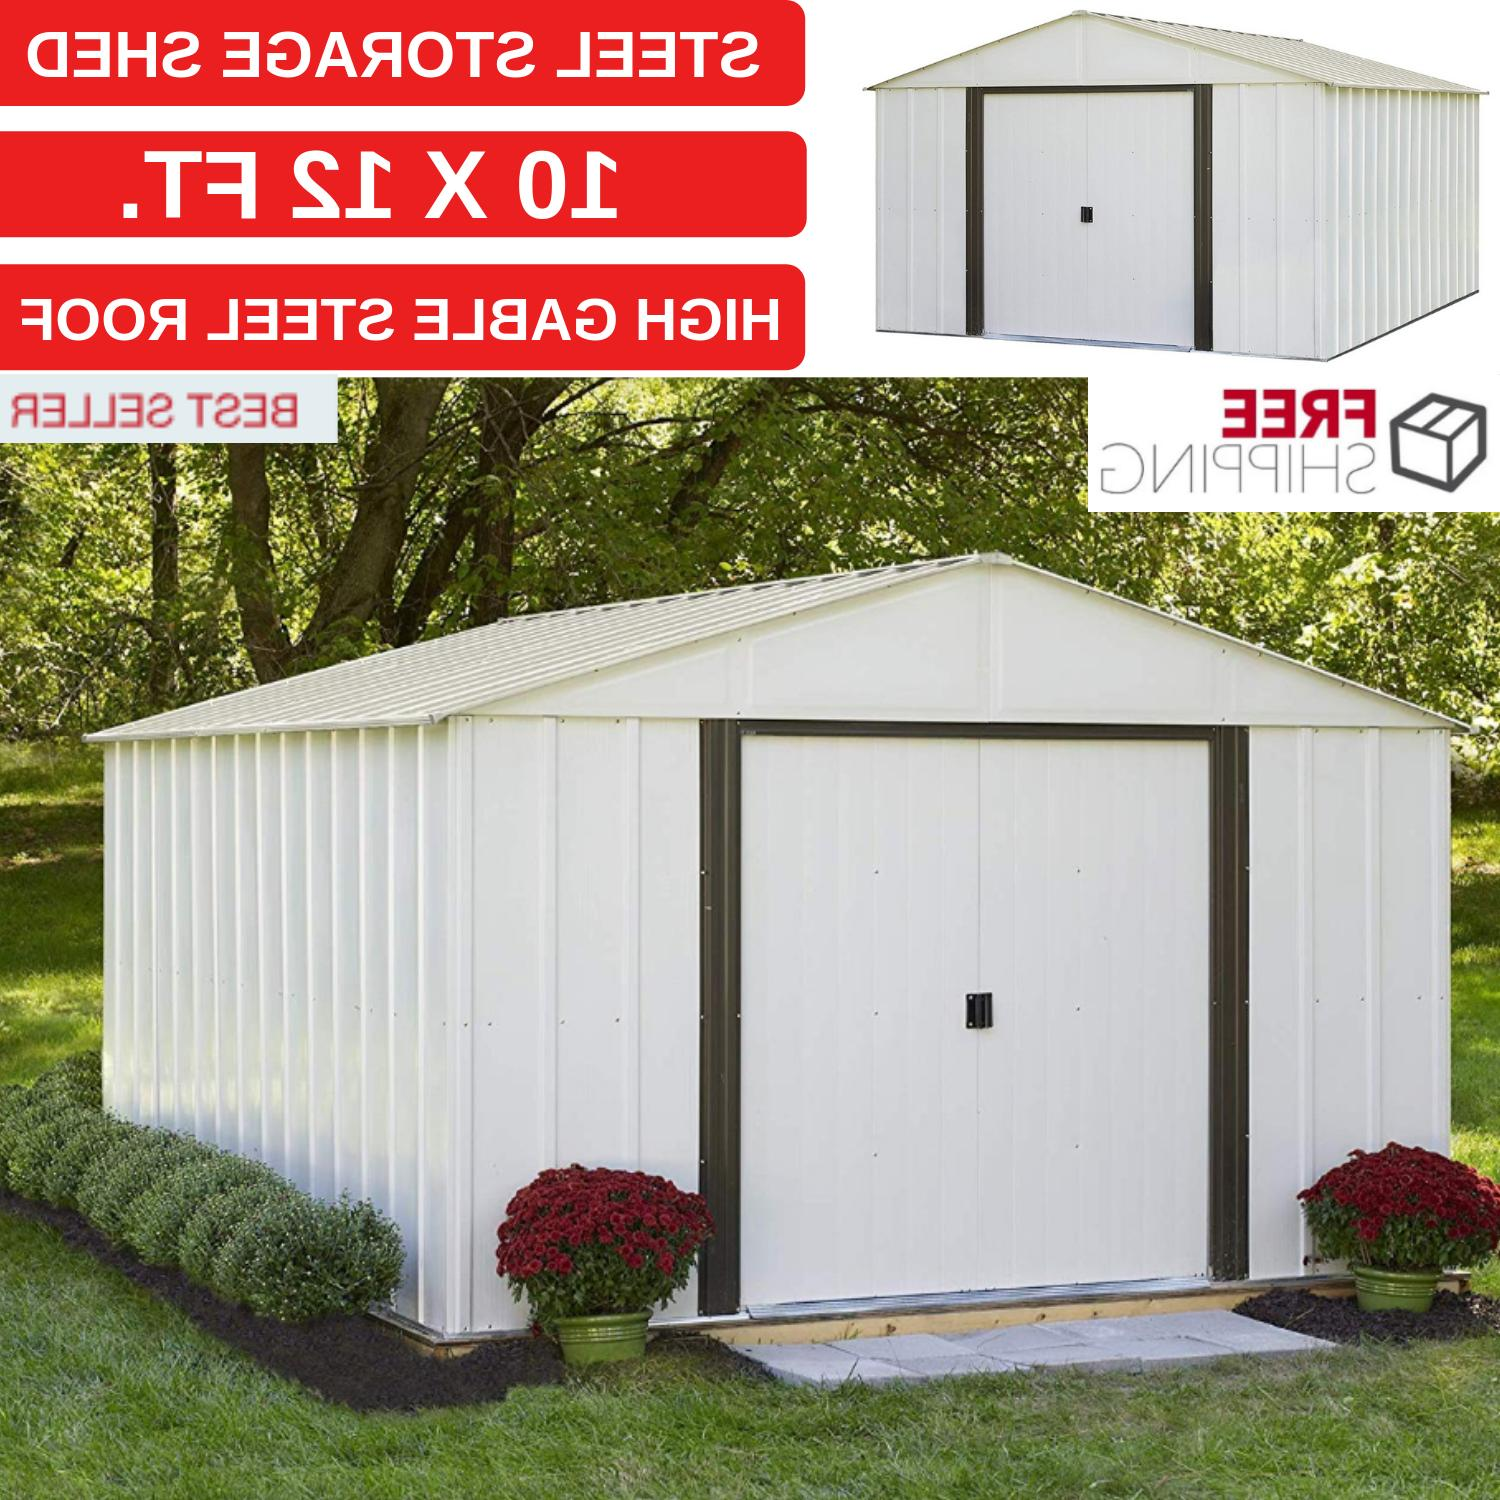 New Steel Storage Shed 10 x 12 ft High Gable Style Roof For